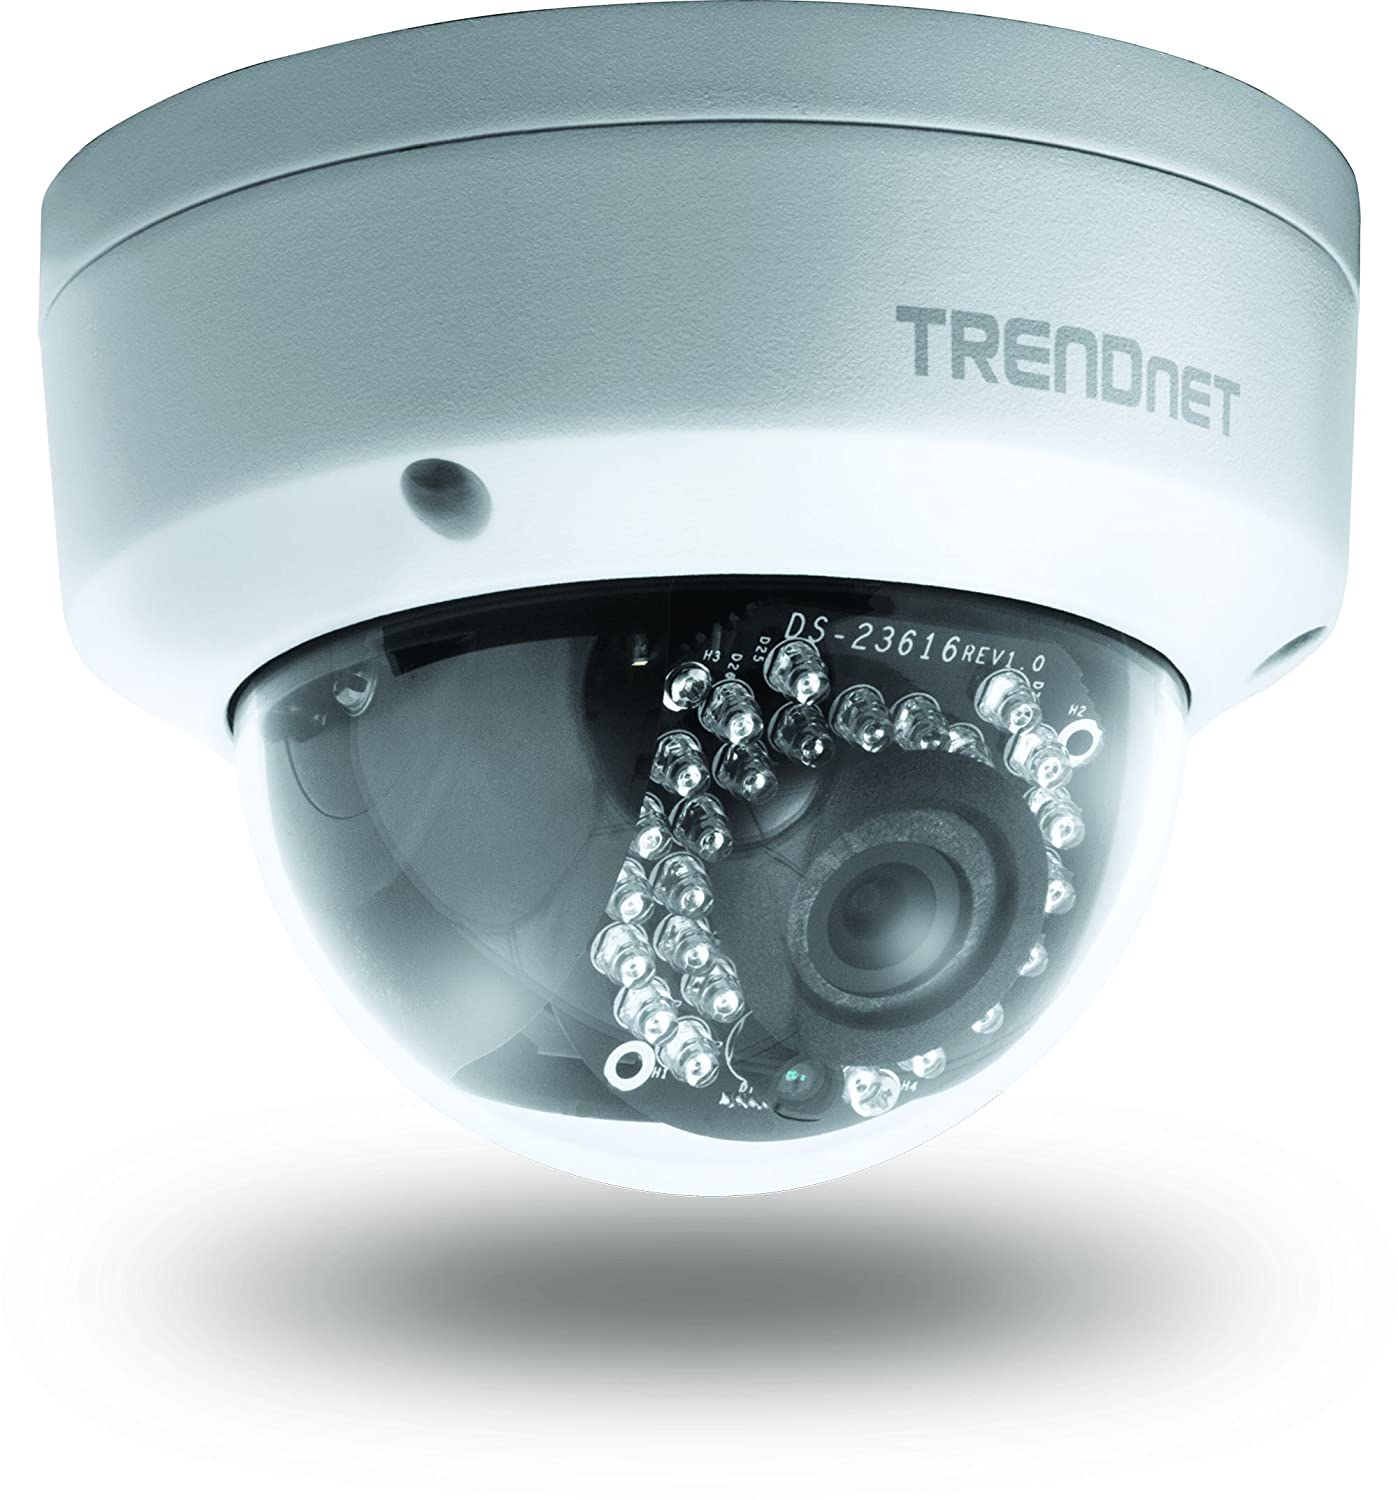 Trendnet TV-IP311PI Outdoor PoE Dome Day/Night